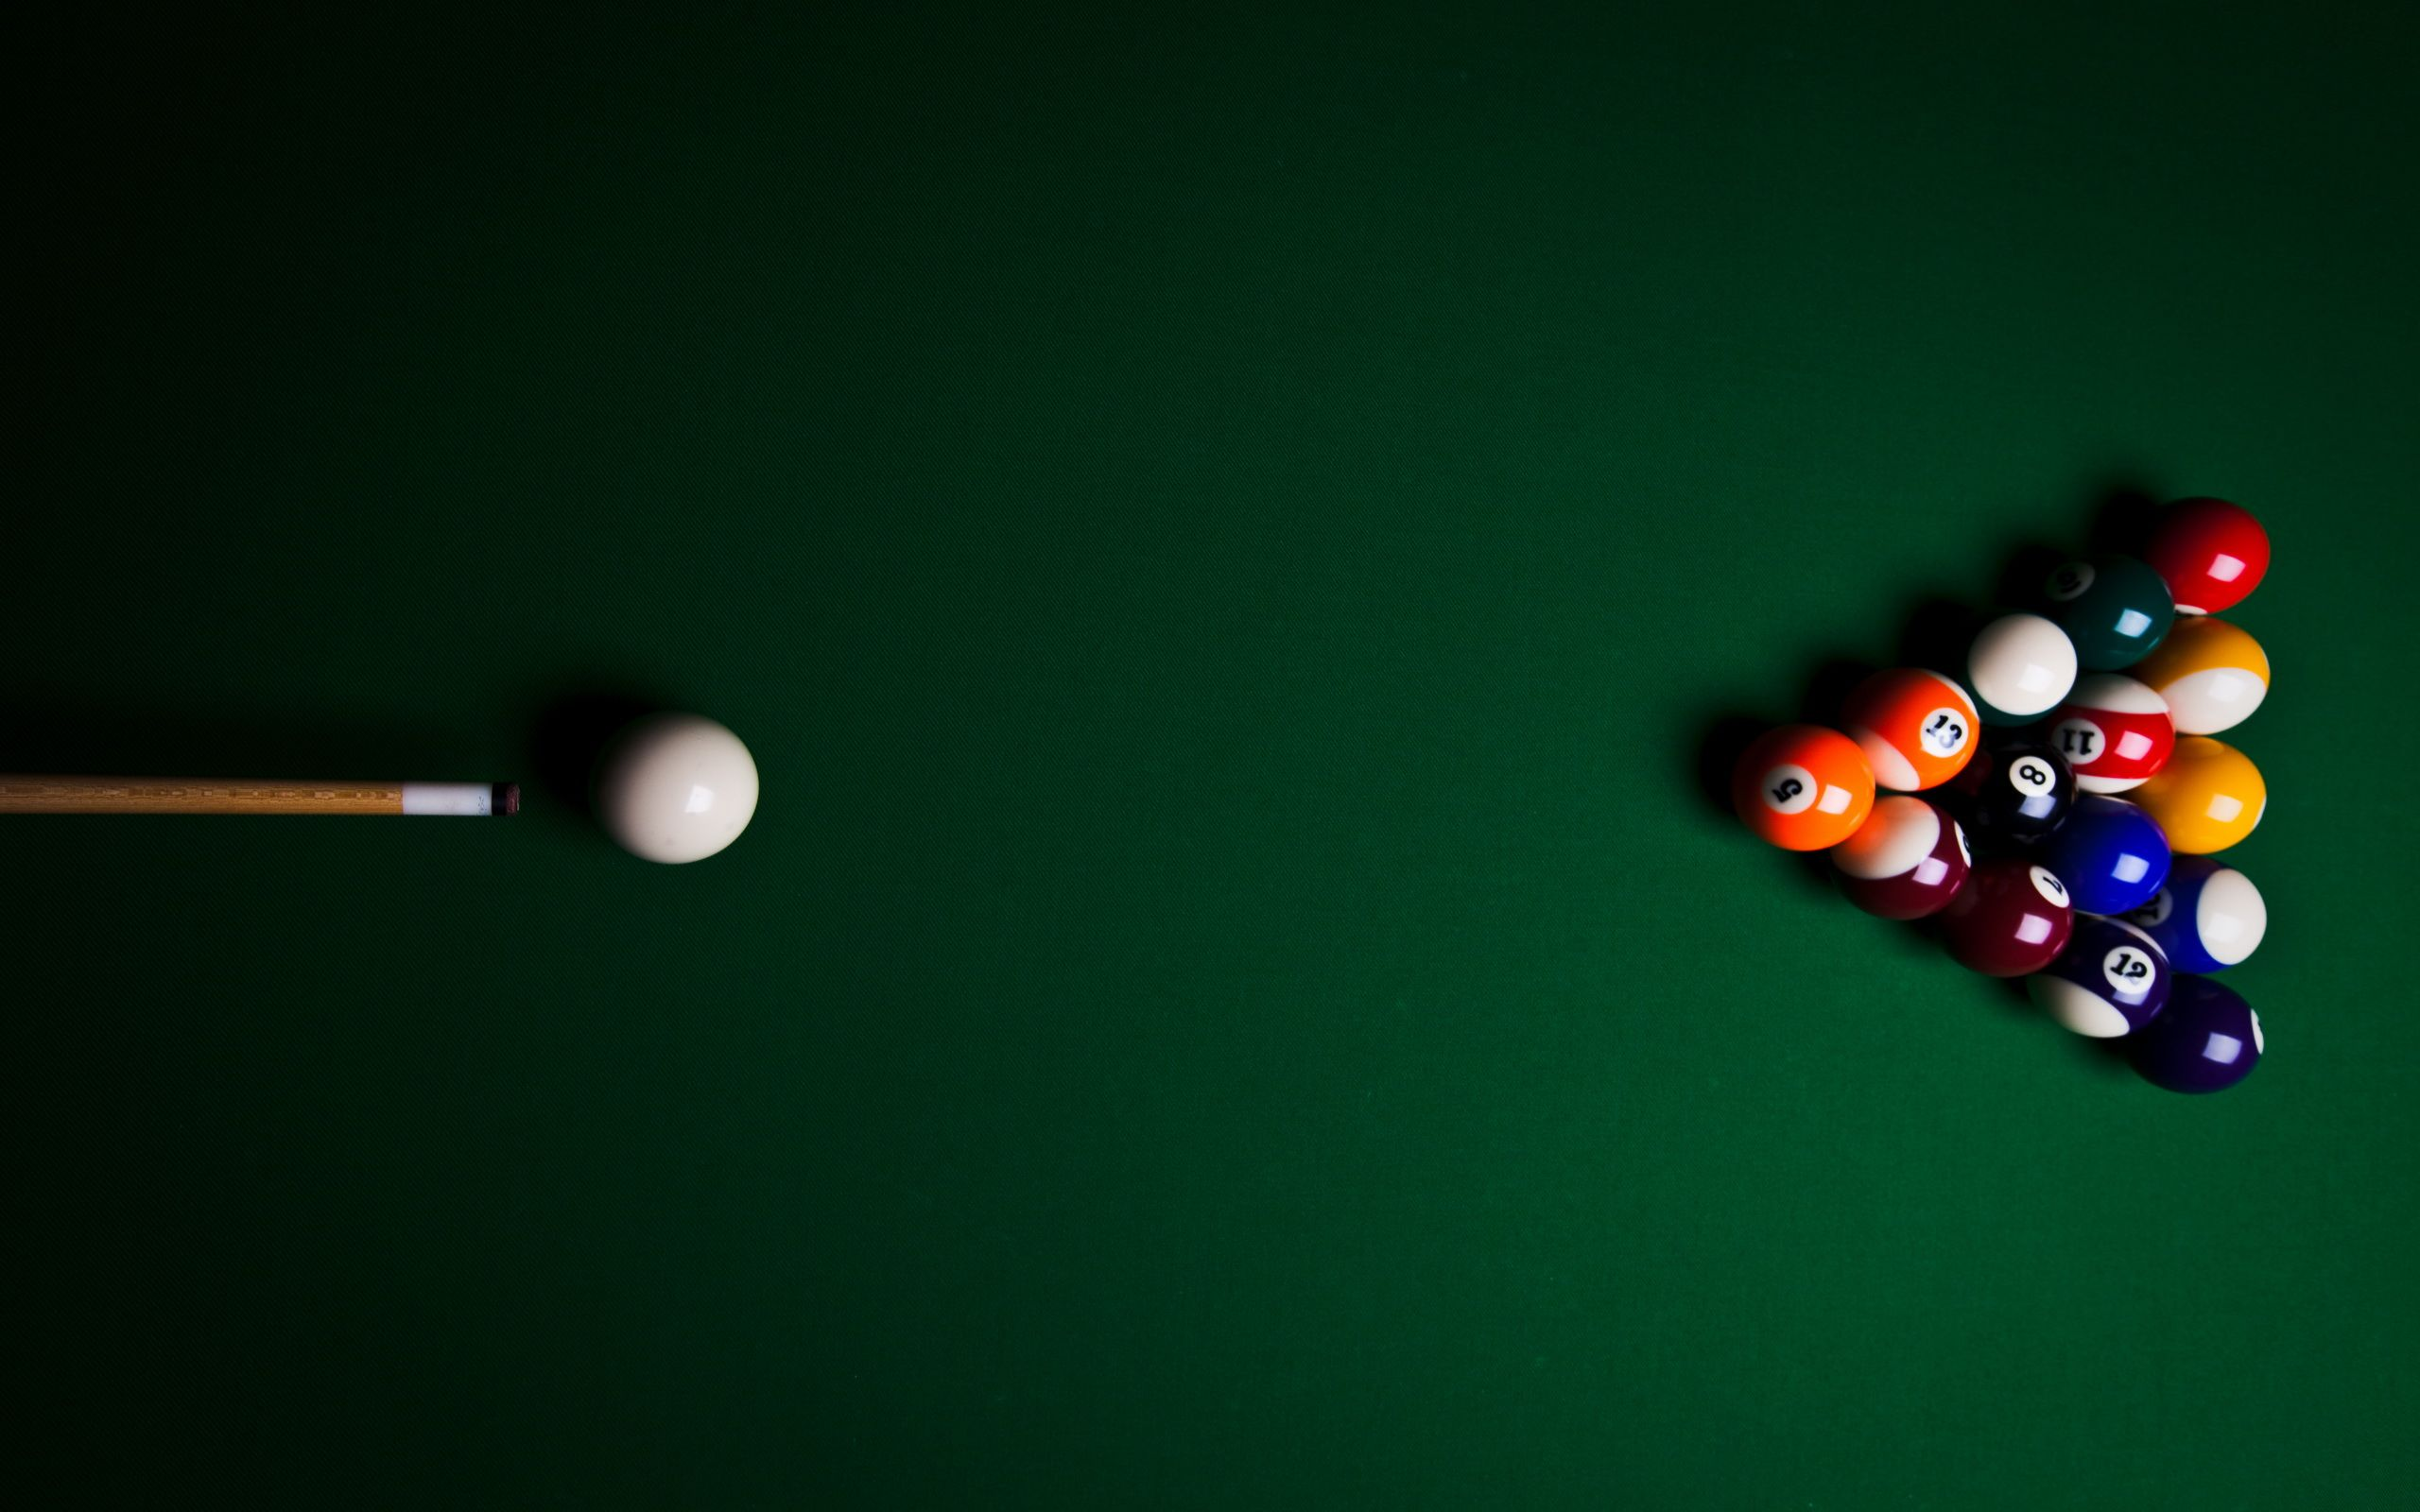 table top background hd. top beautiful pool table and snooker wallpapers in hd background hd h